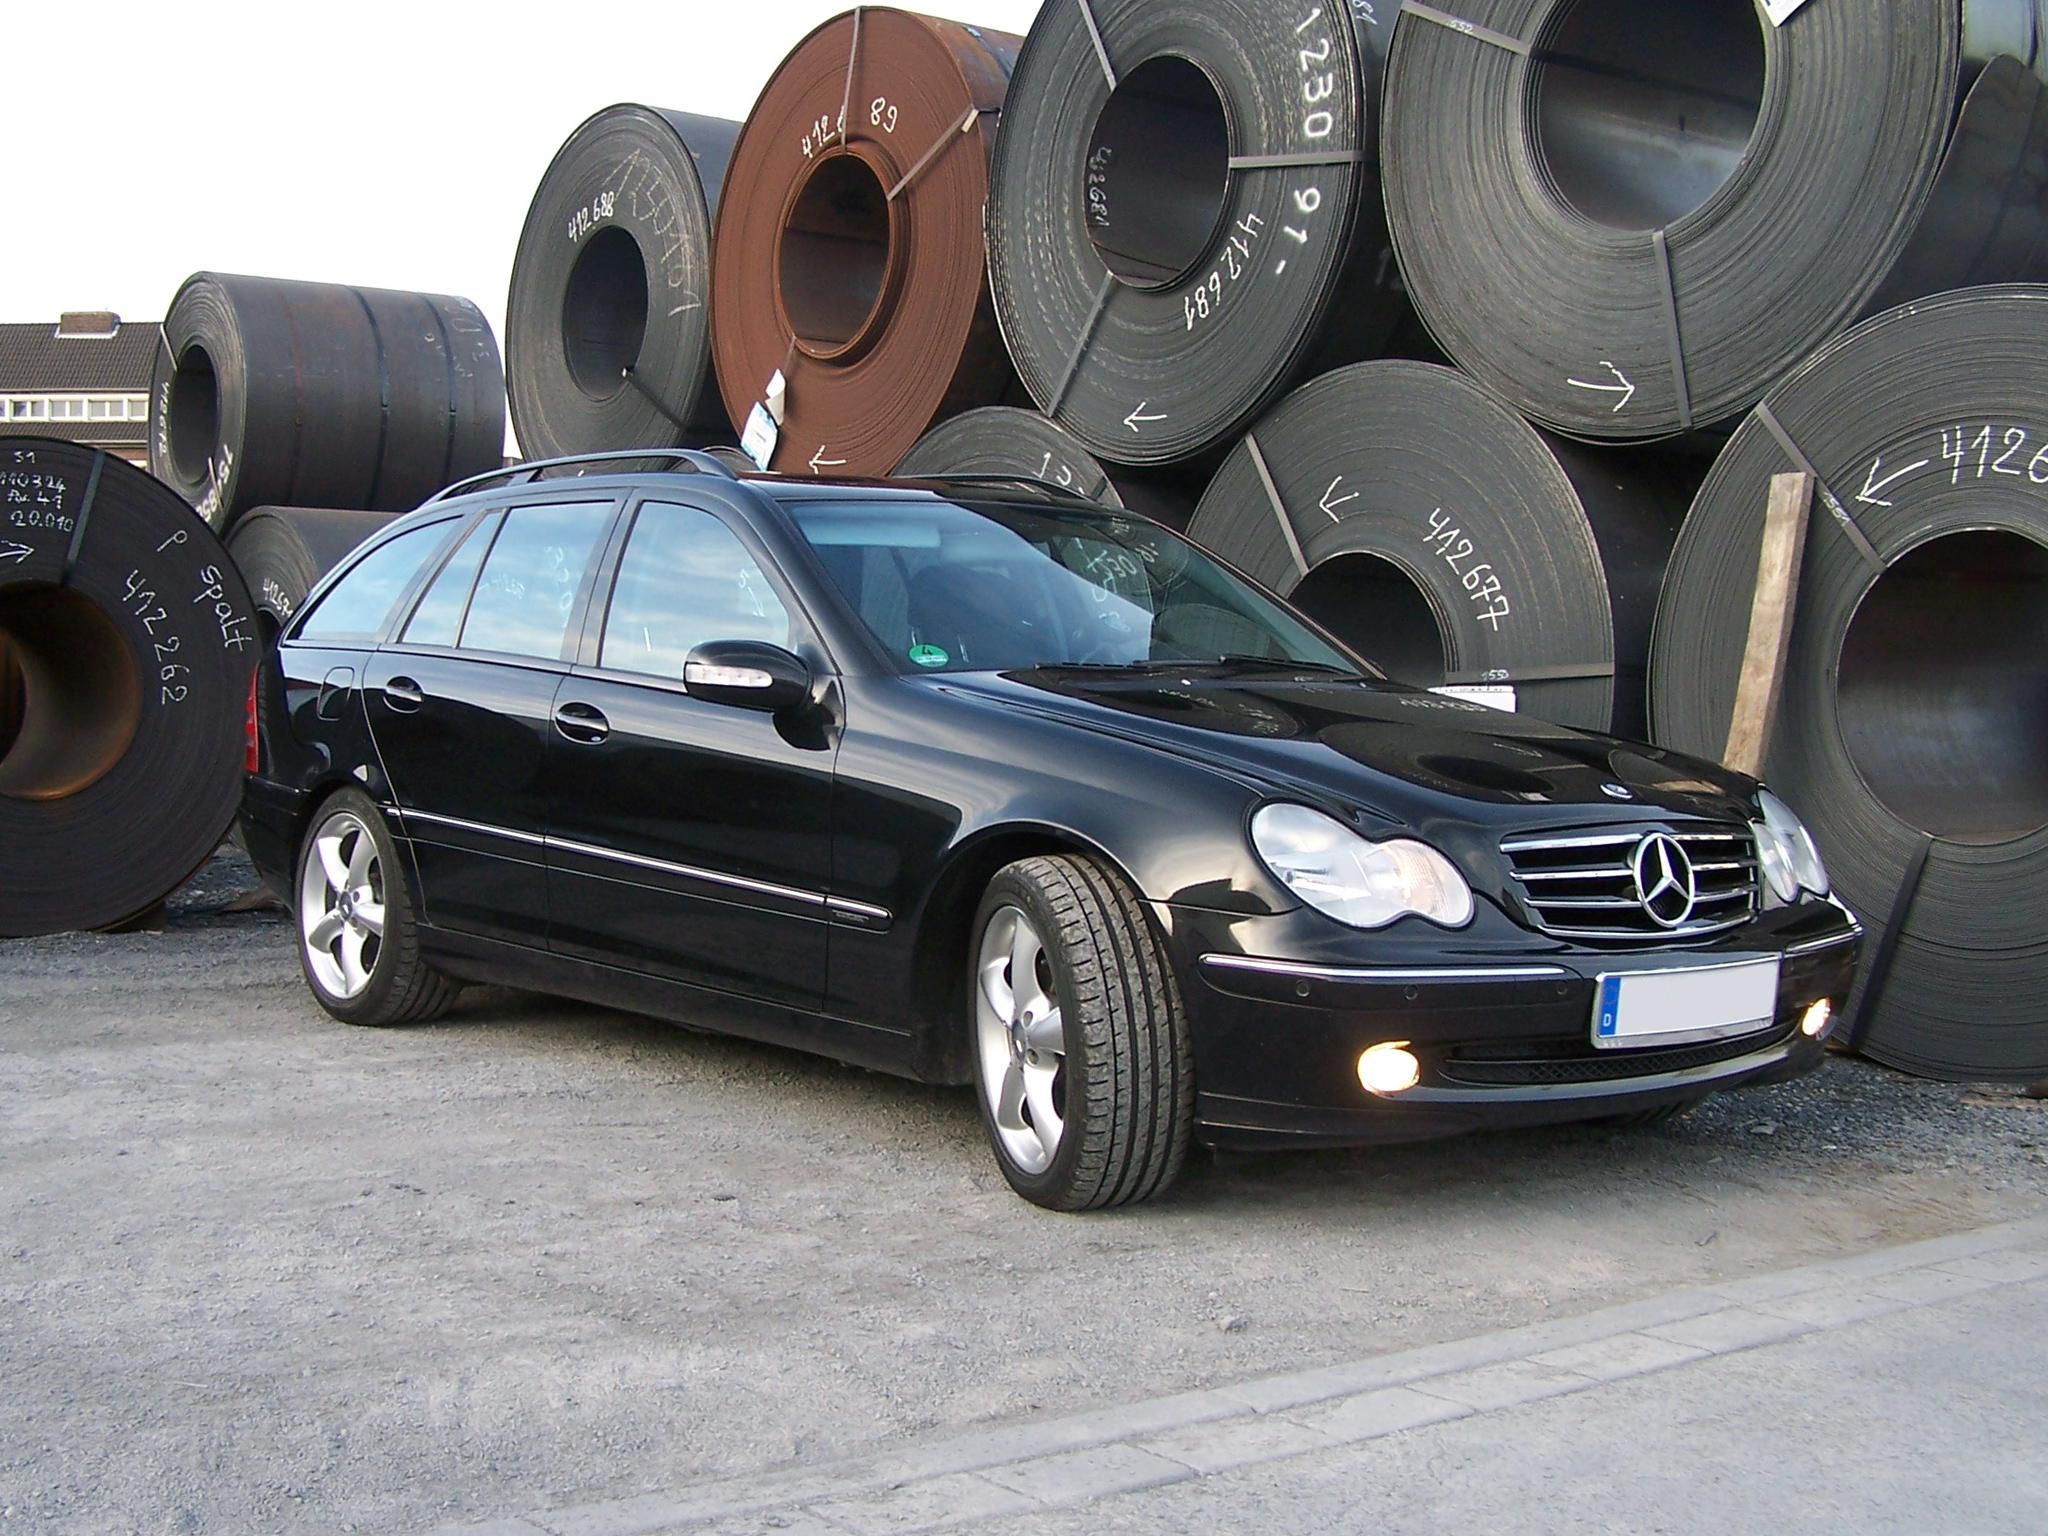 pin mercedes benz c180 elegance w202 1998 page 8 on pinterest. Black Bedroom Furniture Sets. Home Design Ideas